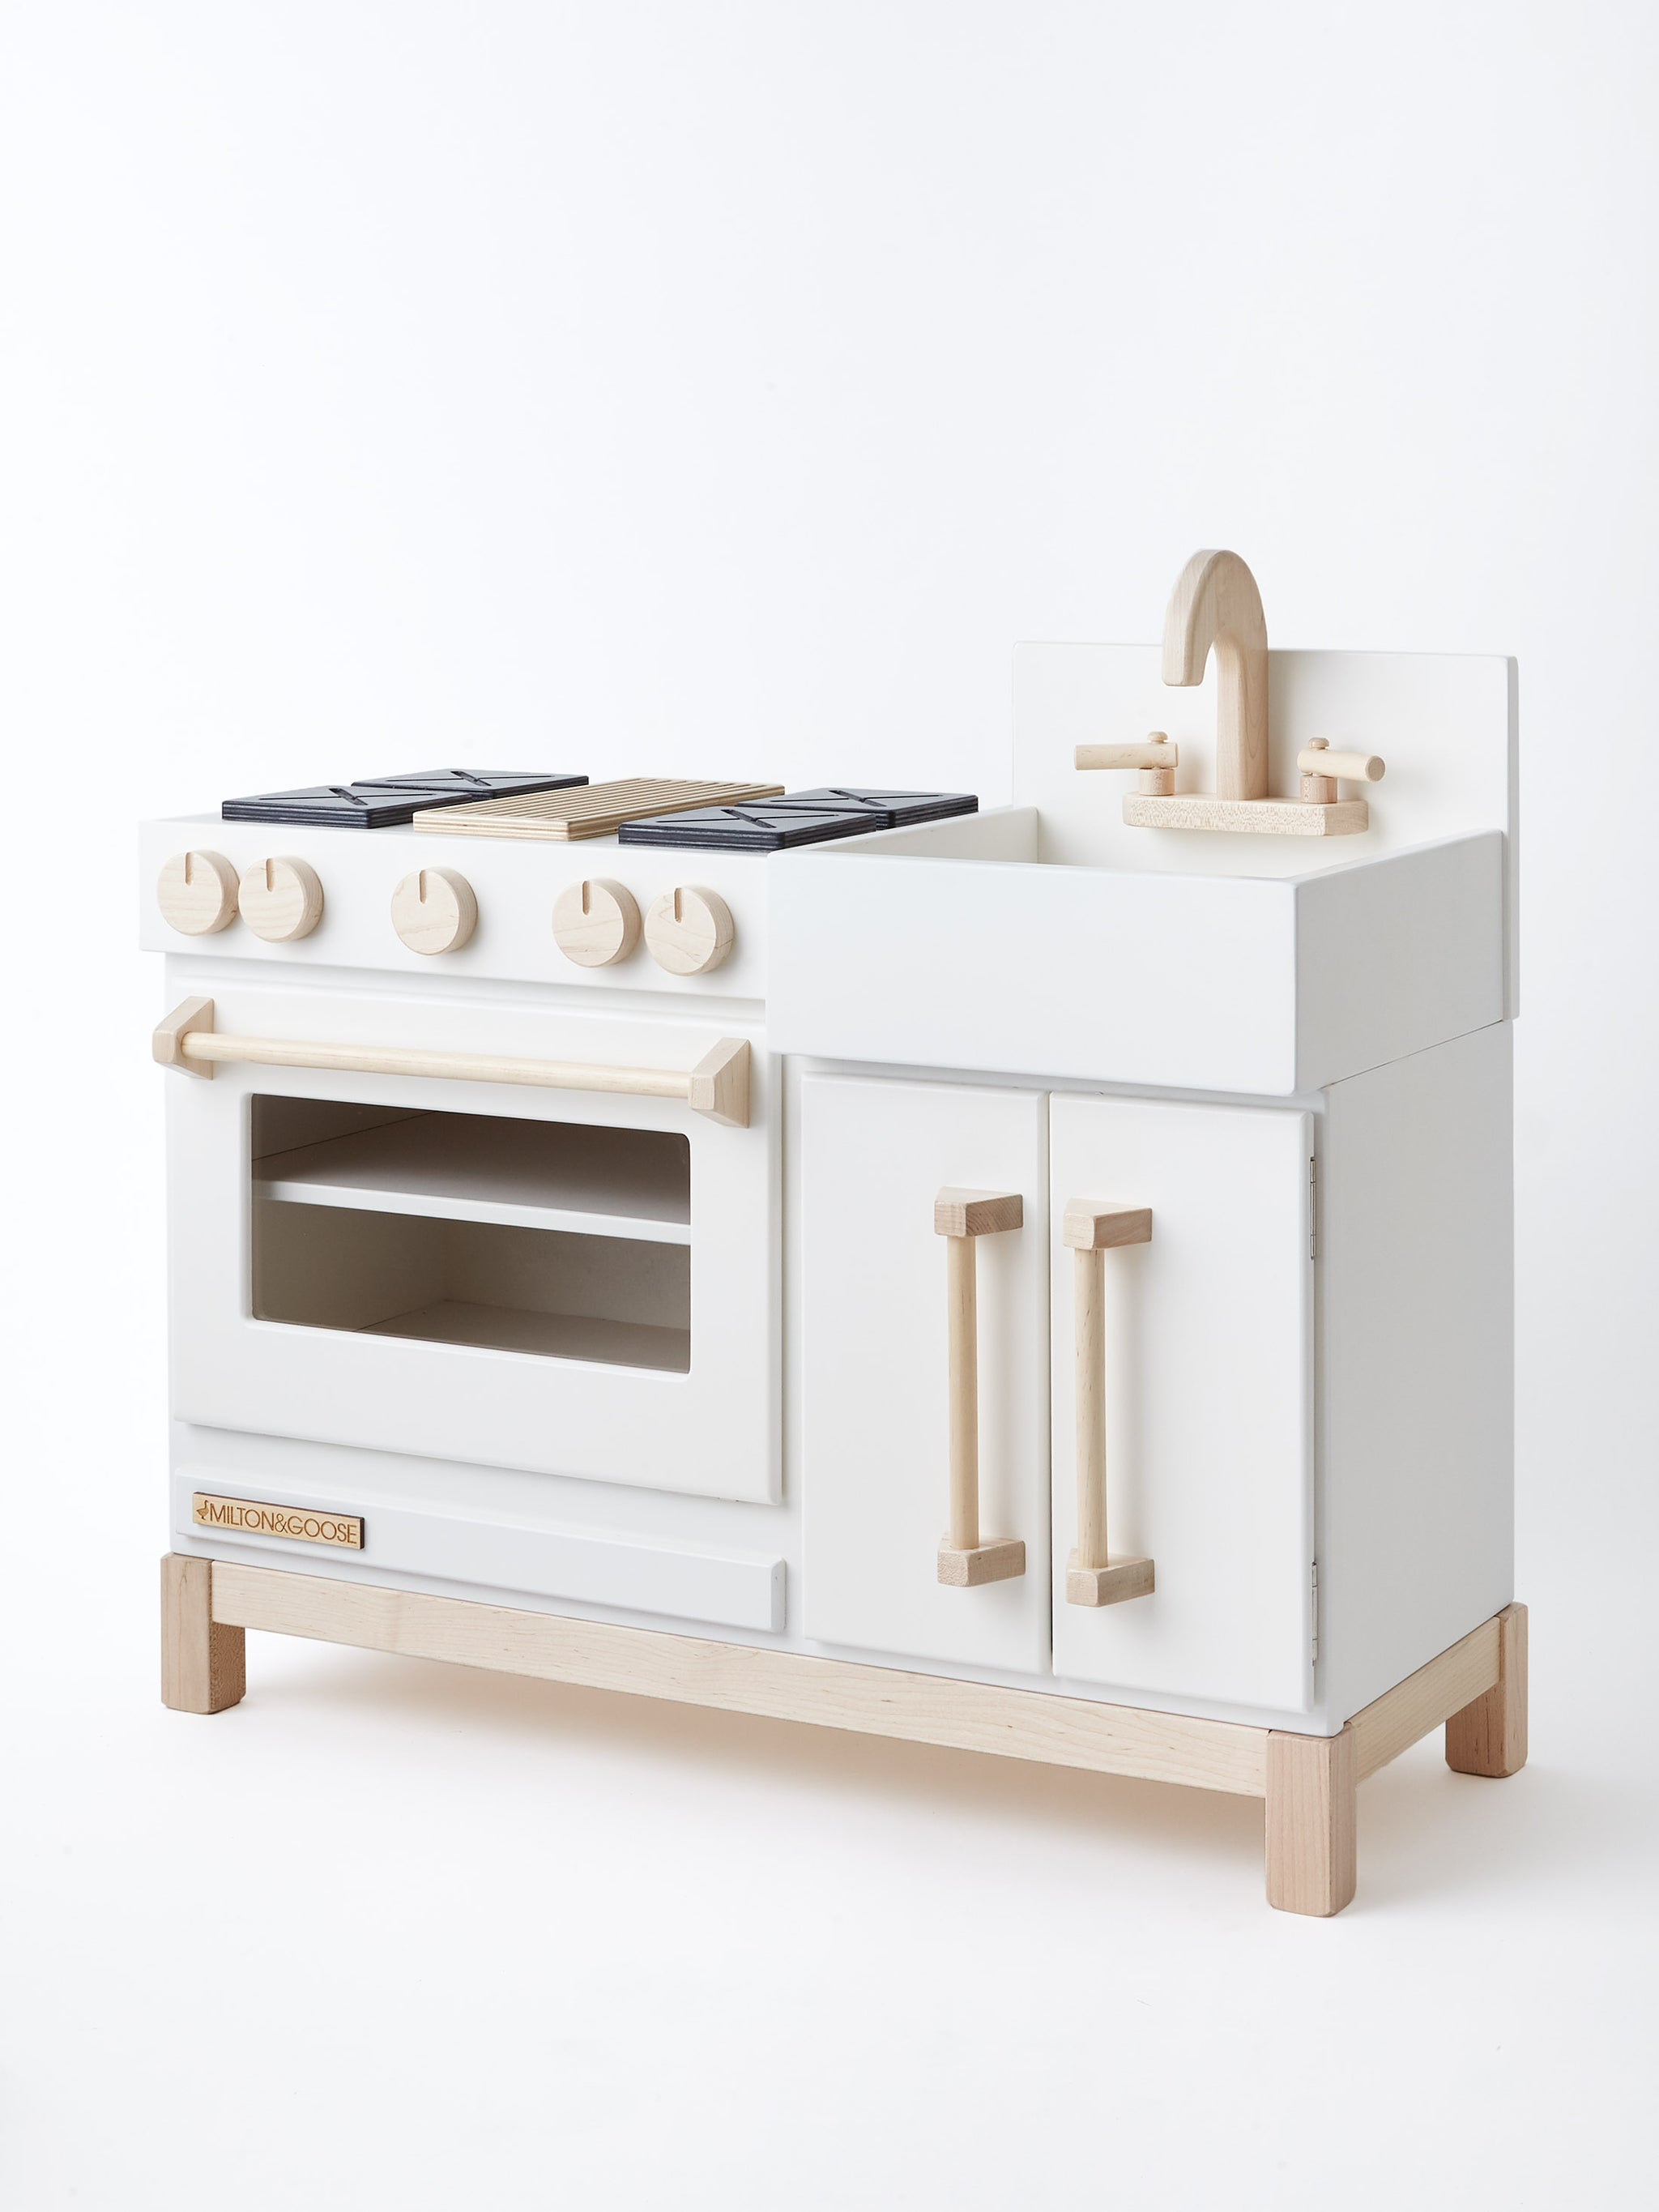 Montessori Mini Kitchen - PeuroBaby